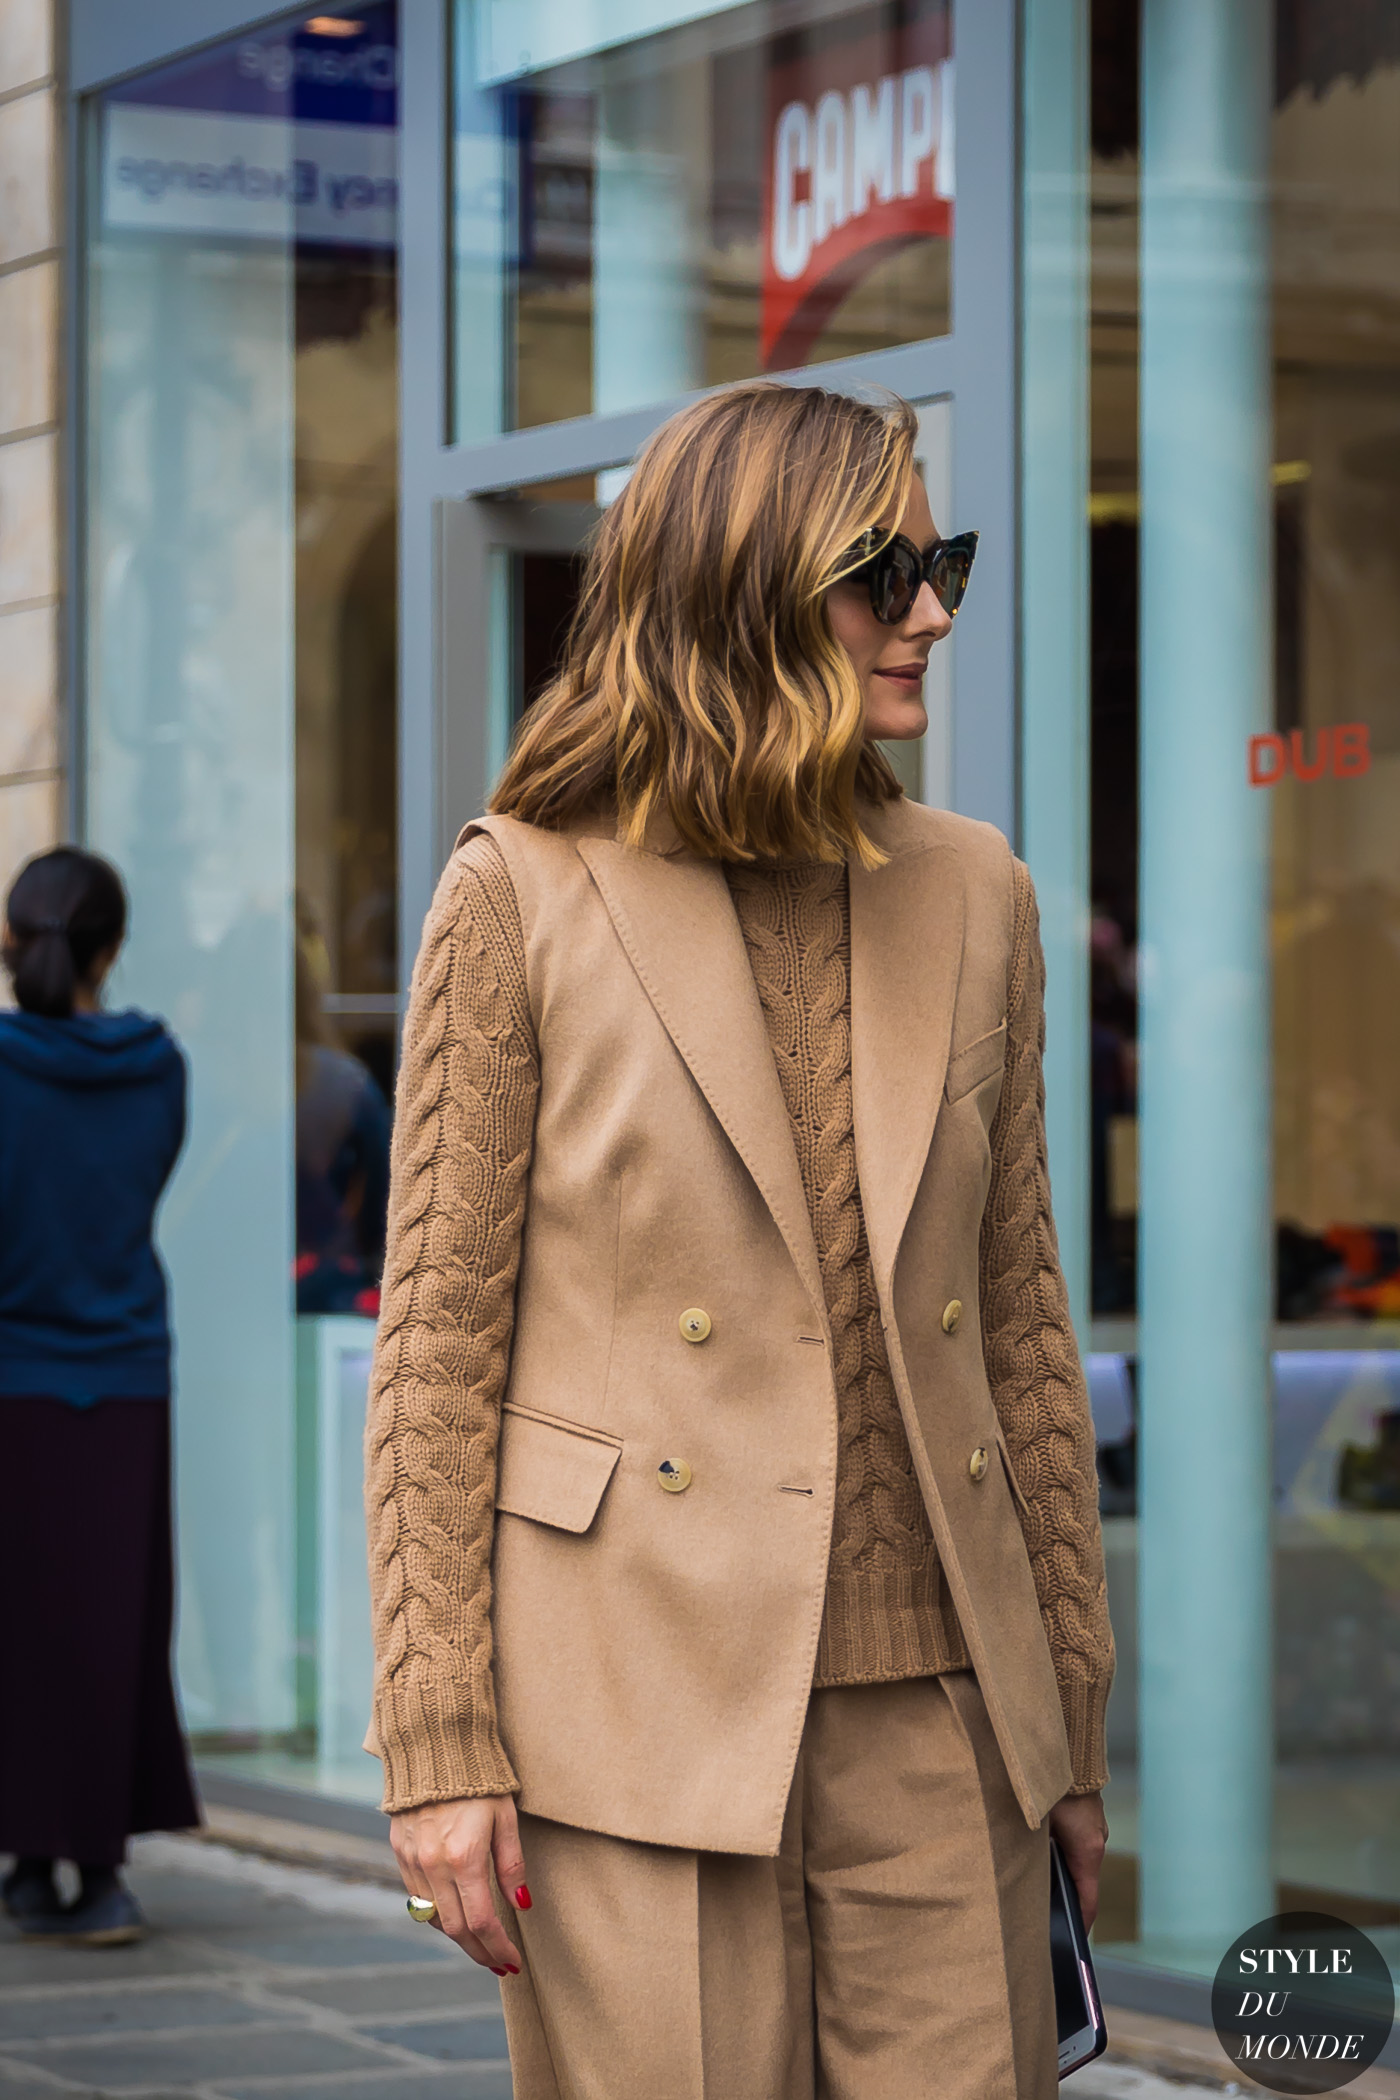 Olivia Palermo by STYLEDUMONDE Street Style Fashion Photography_48A9964